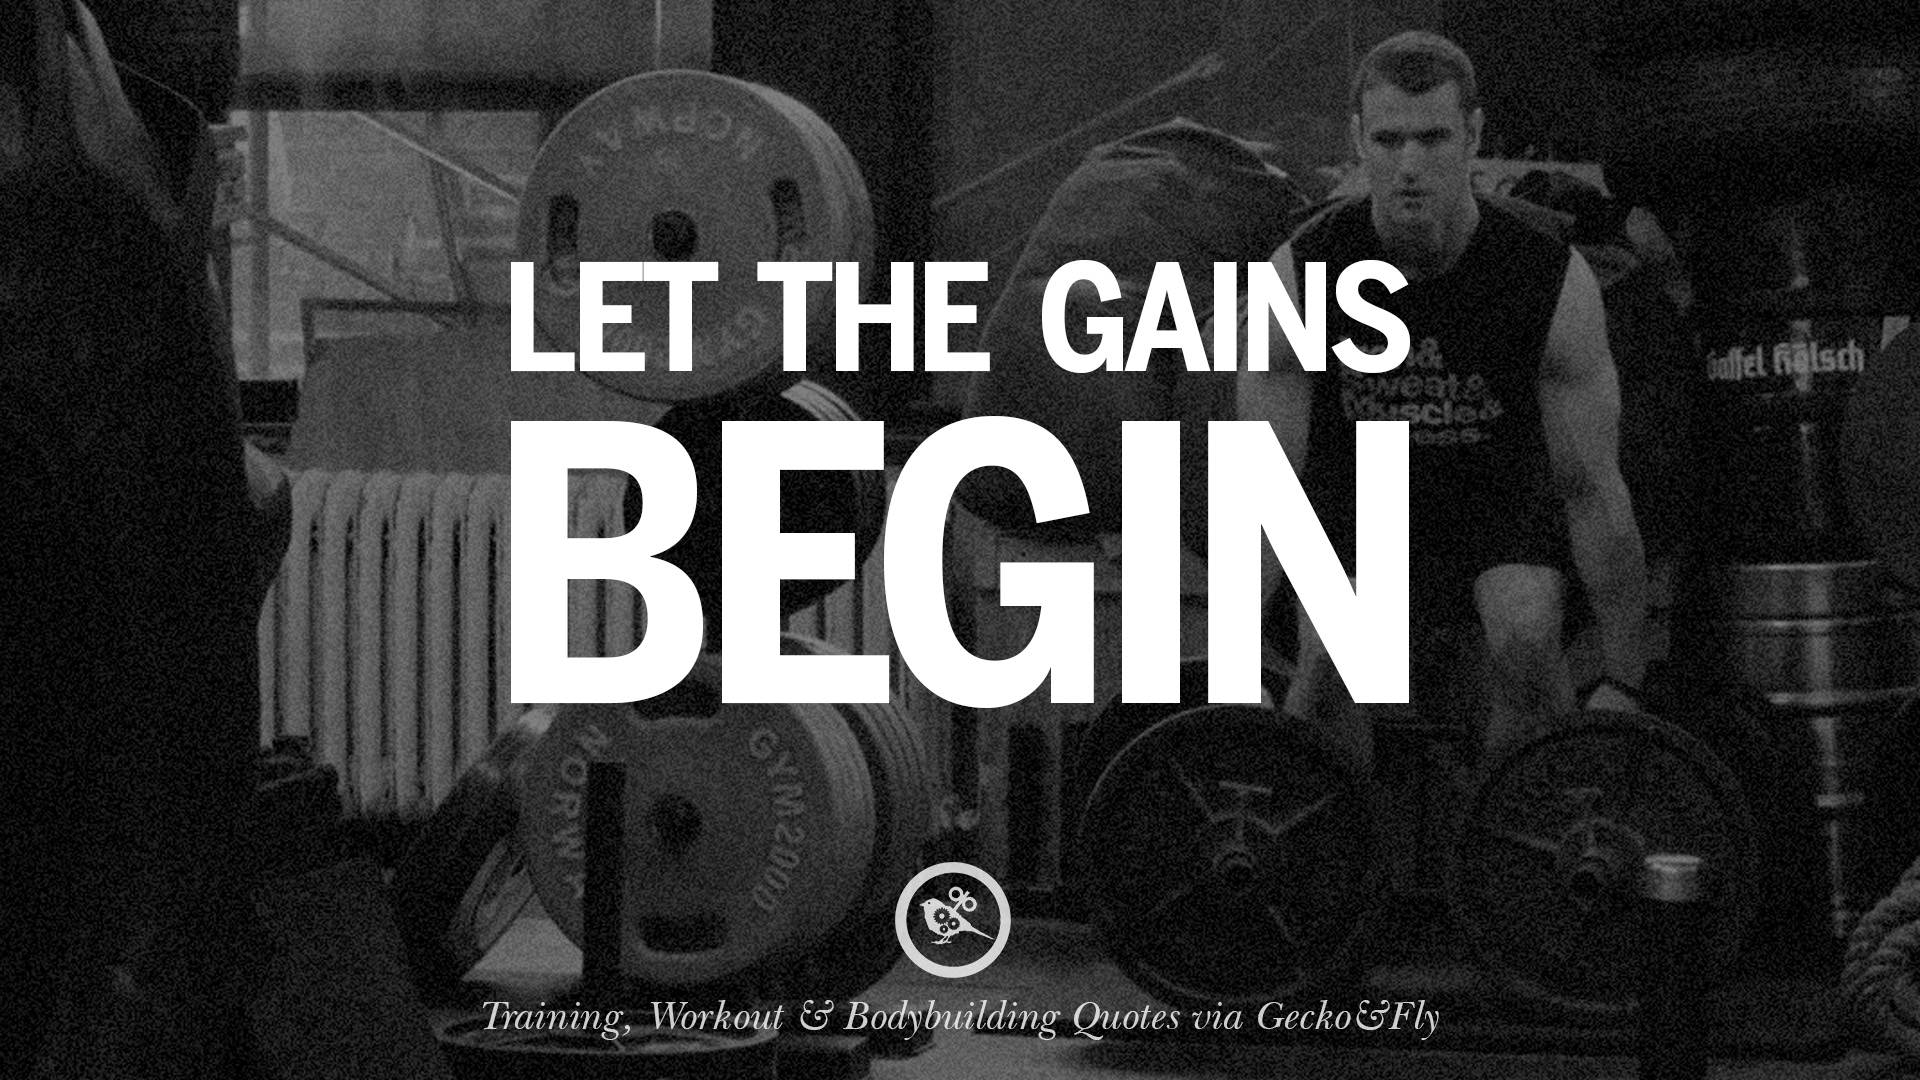 Bodybuilding Quotes Simple 10 Muscle Boosting Quotes For Workout & Bodybuilding Gains